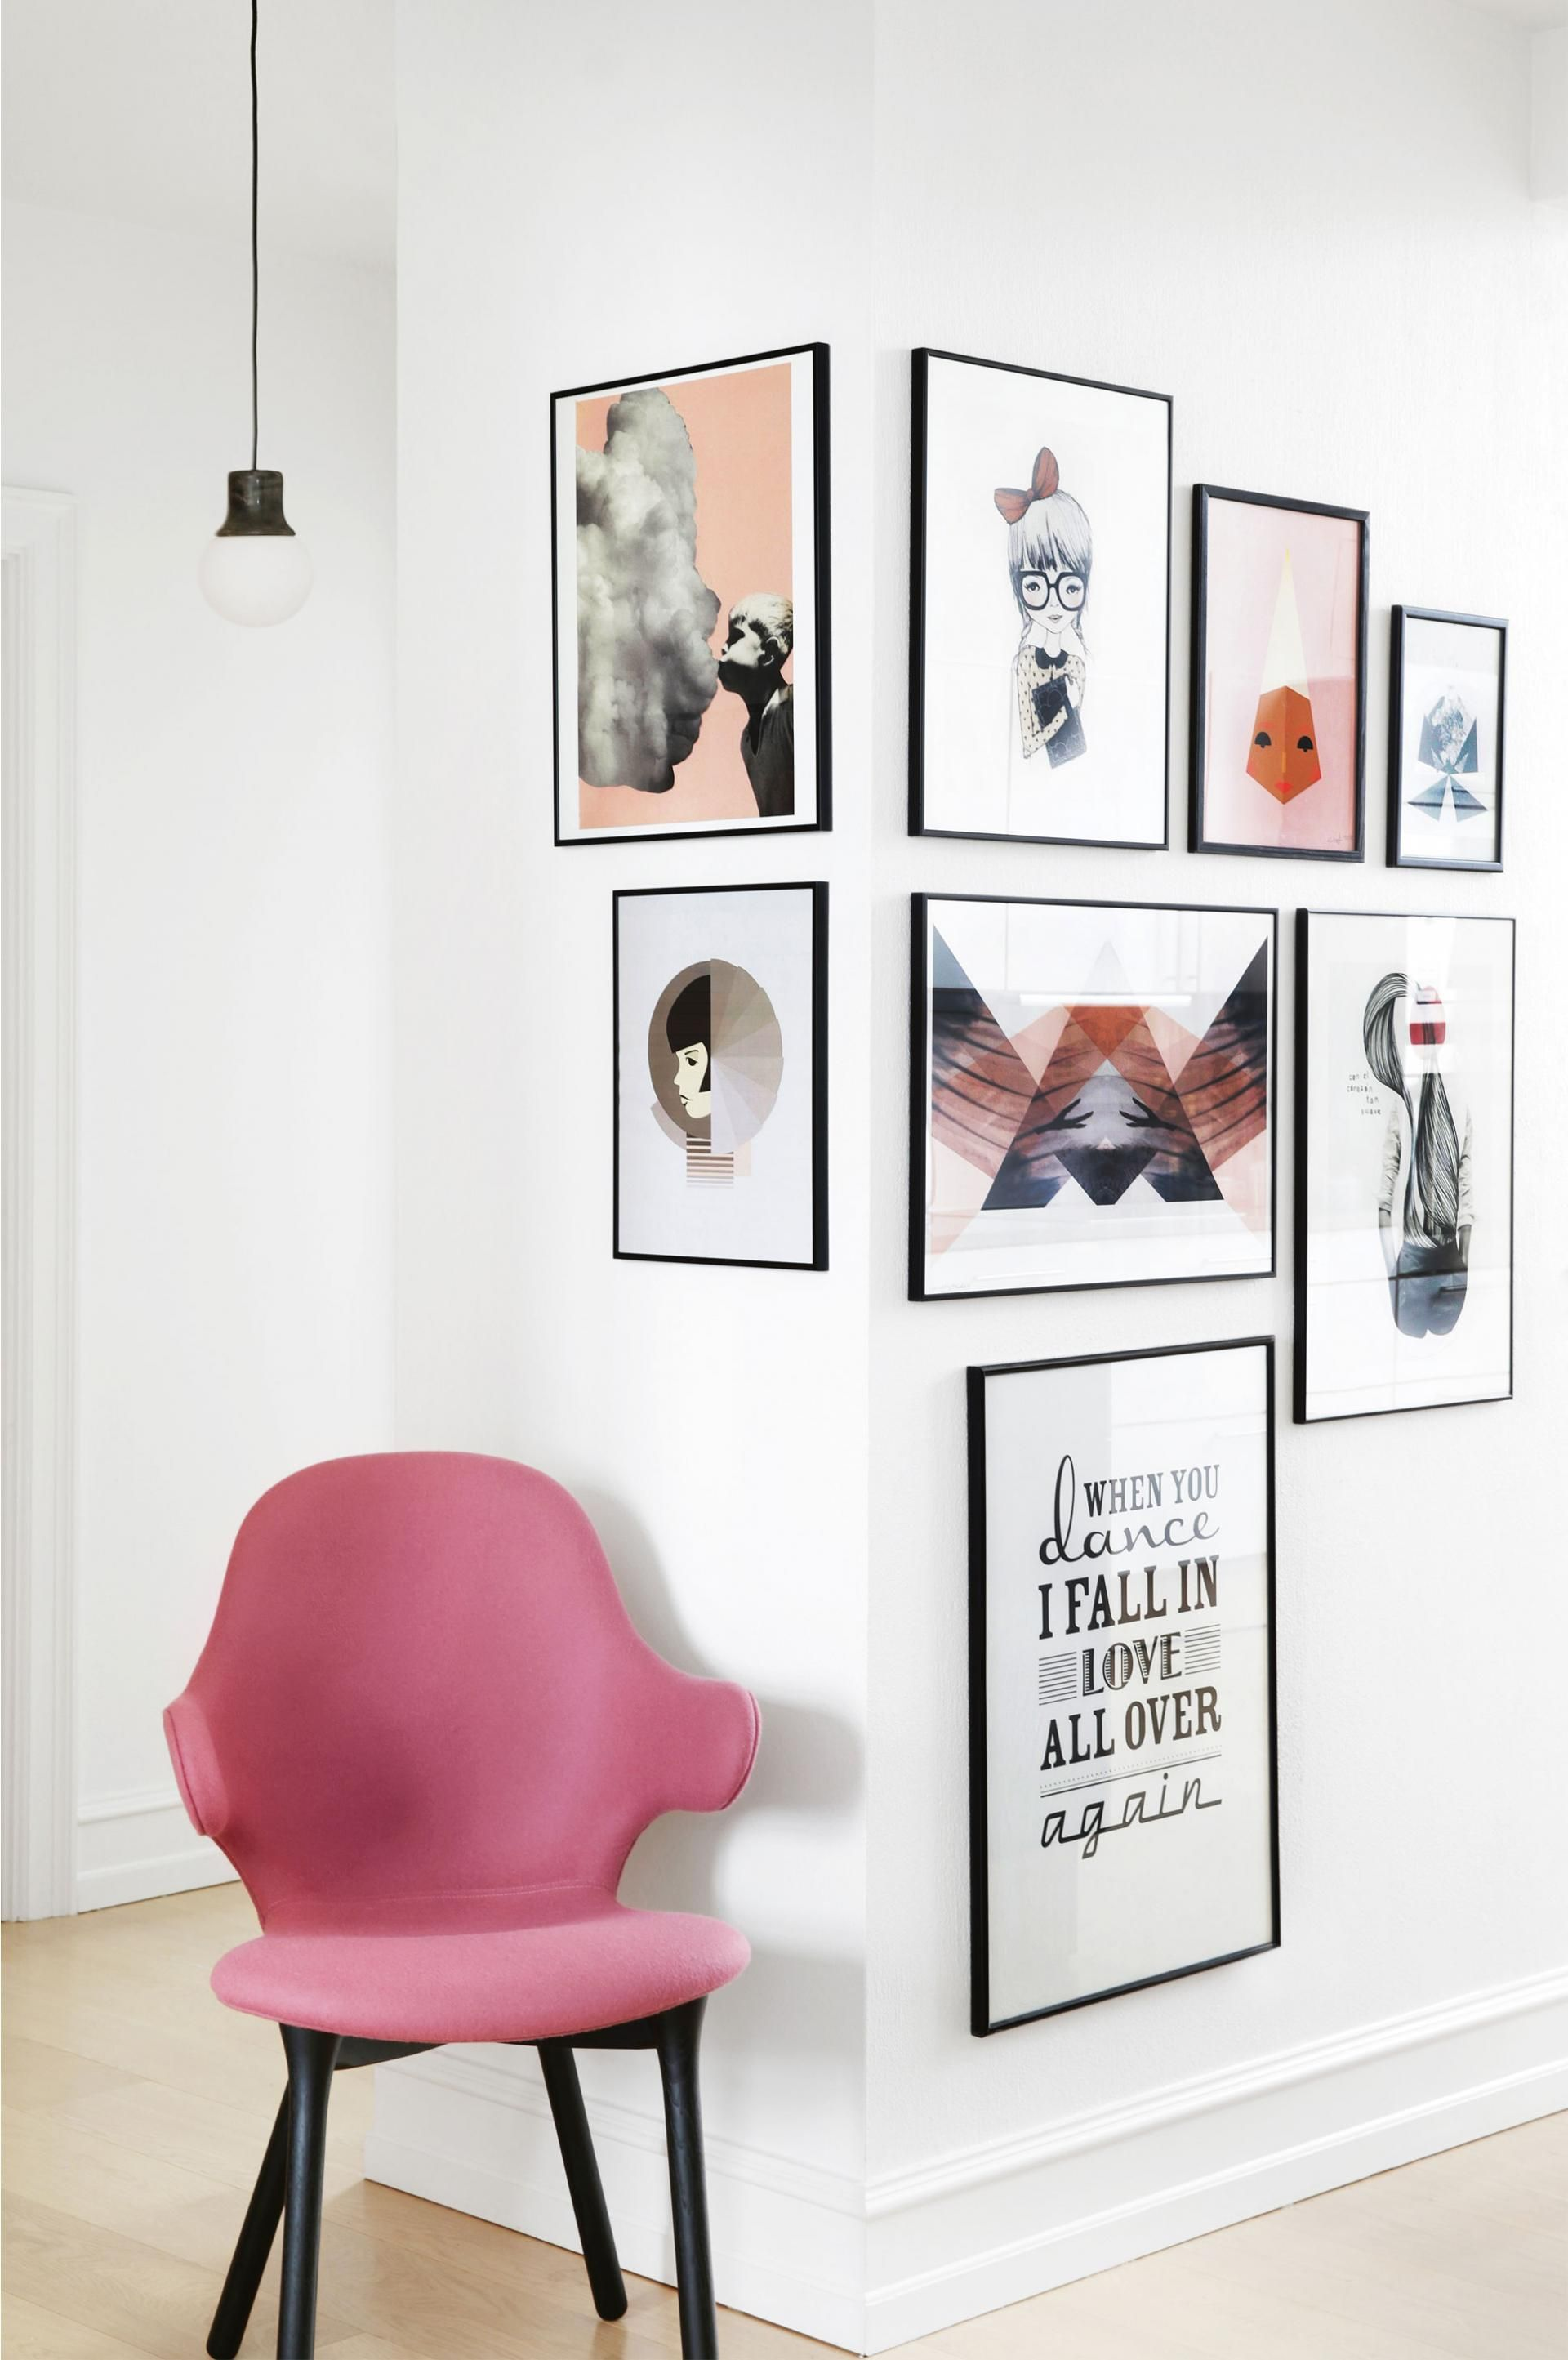 How to frame art for your home. Photography by Frederikke Heiberg.